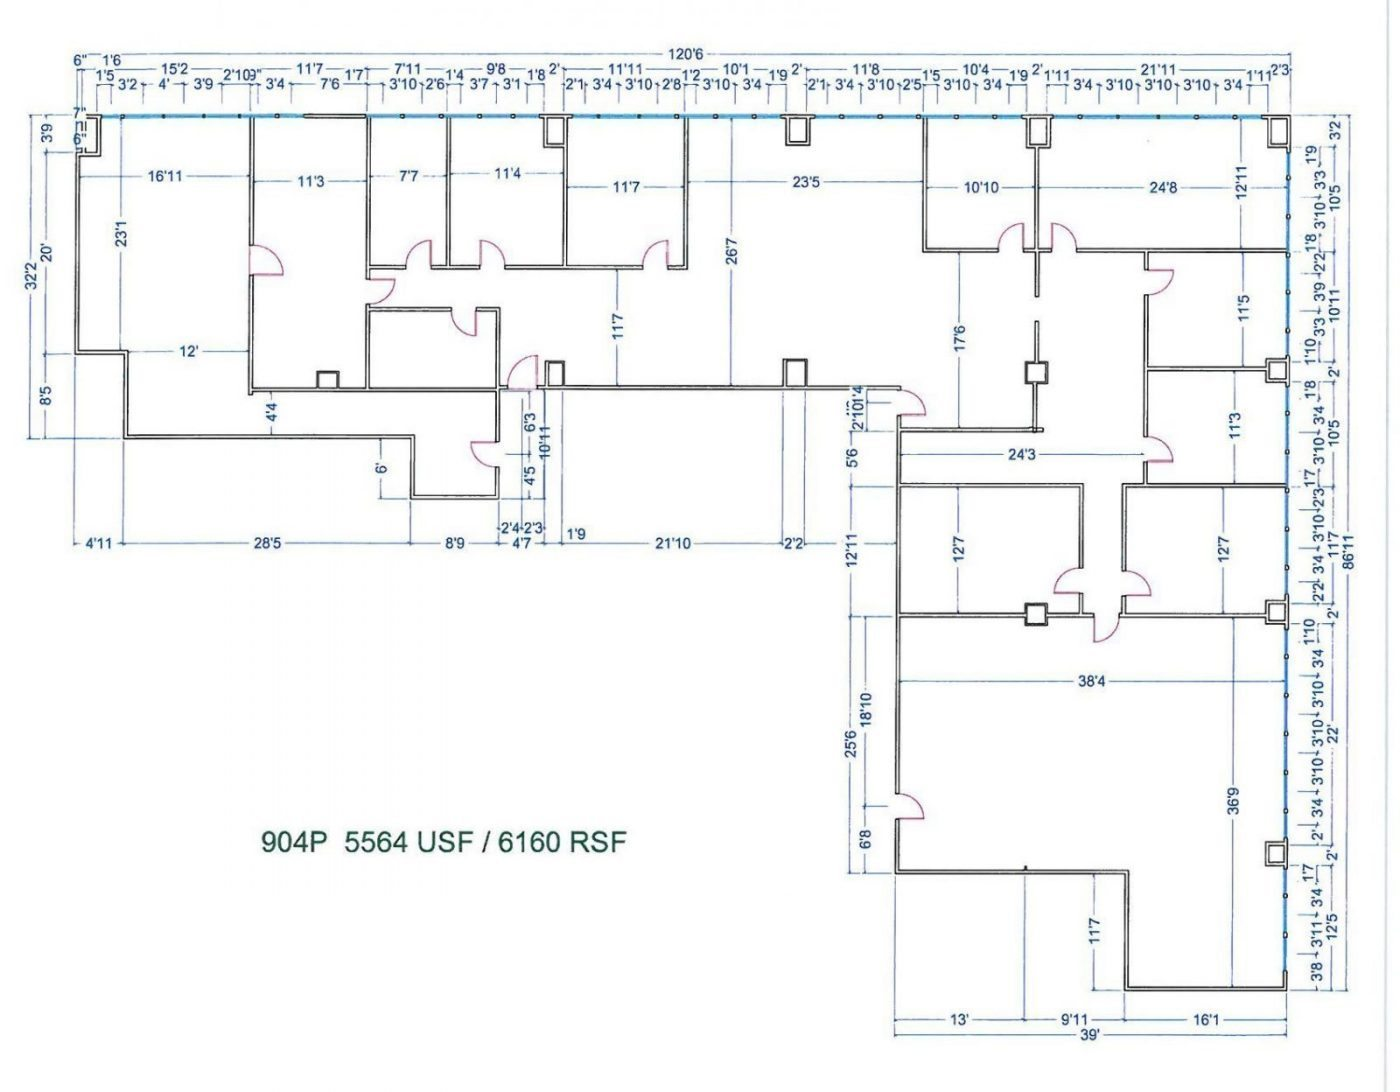 Floor Plan for unit 904P at 20755 Greenfield Rd - 9th Floor Southfield, MI 48075